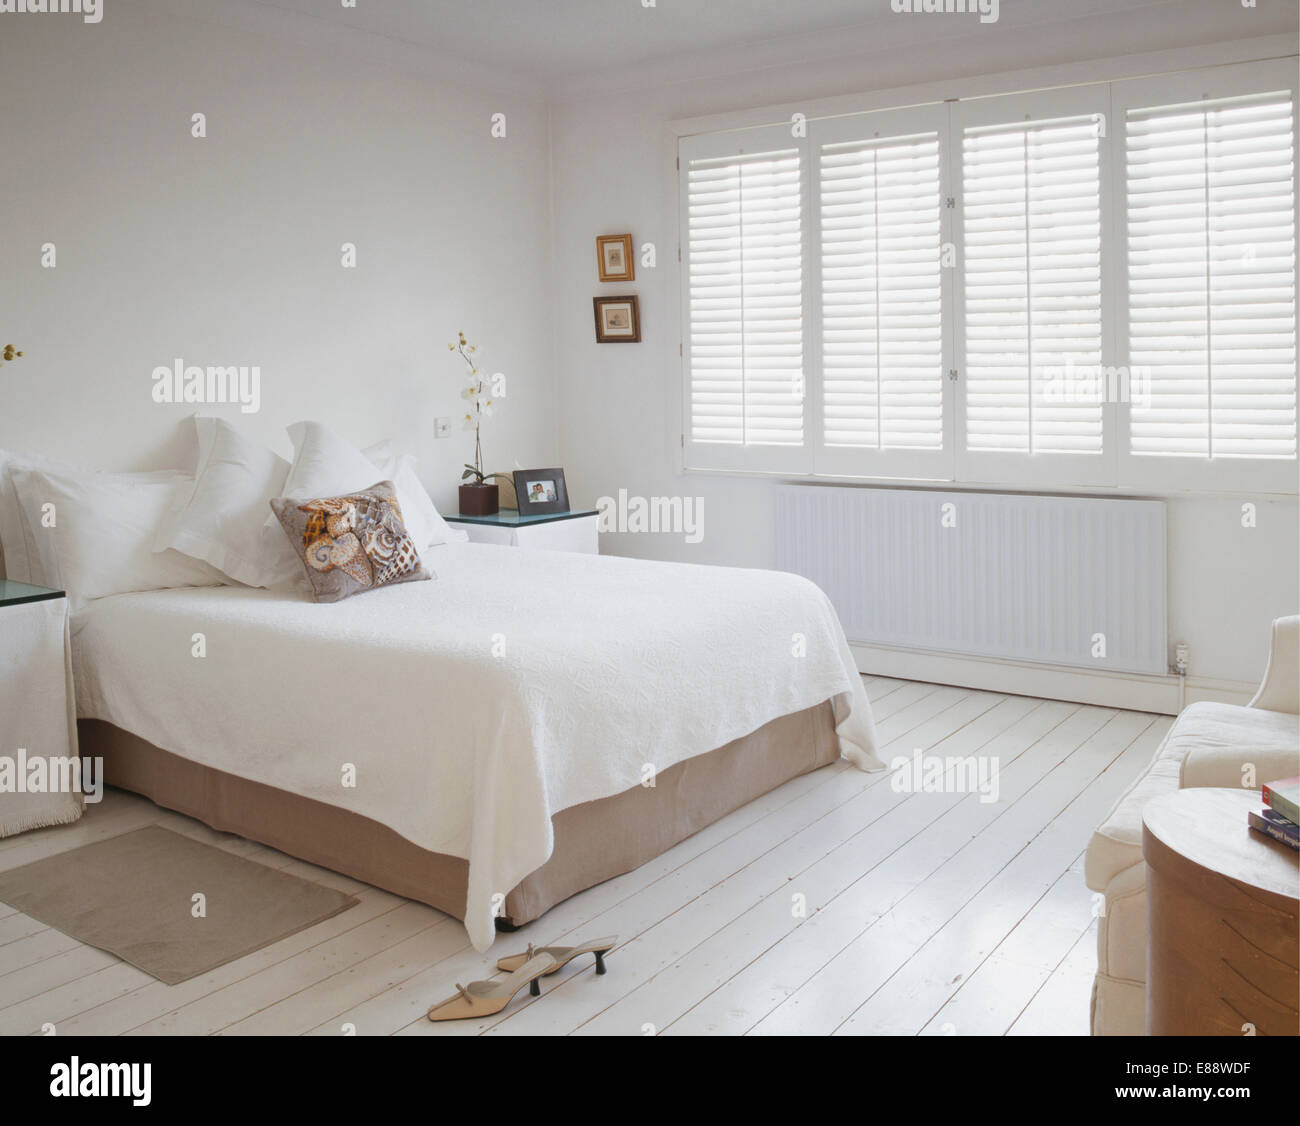 White Bedcover On Bed In White Bedroom With Plantation